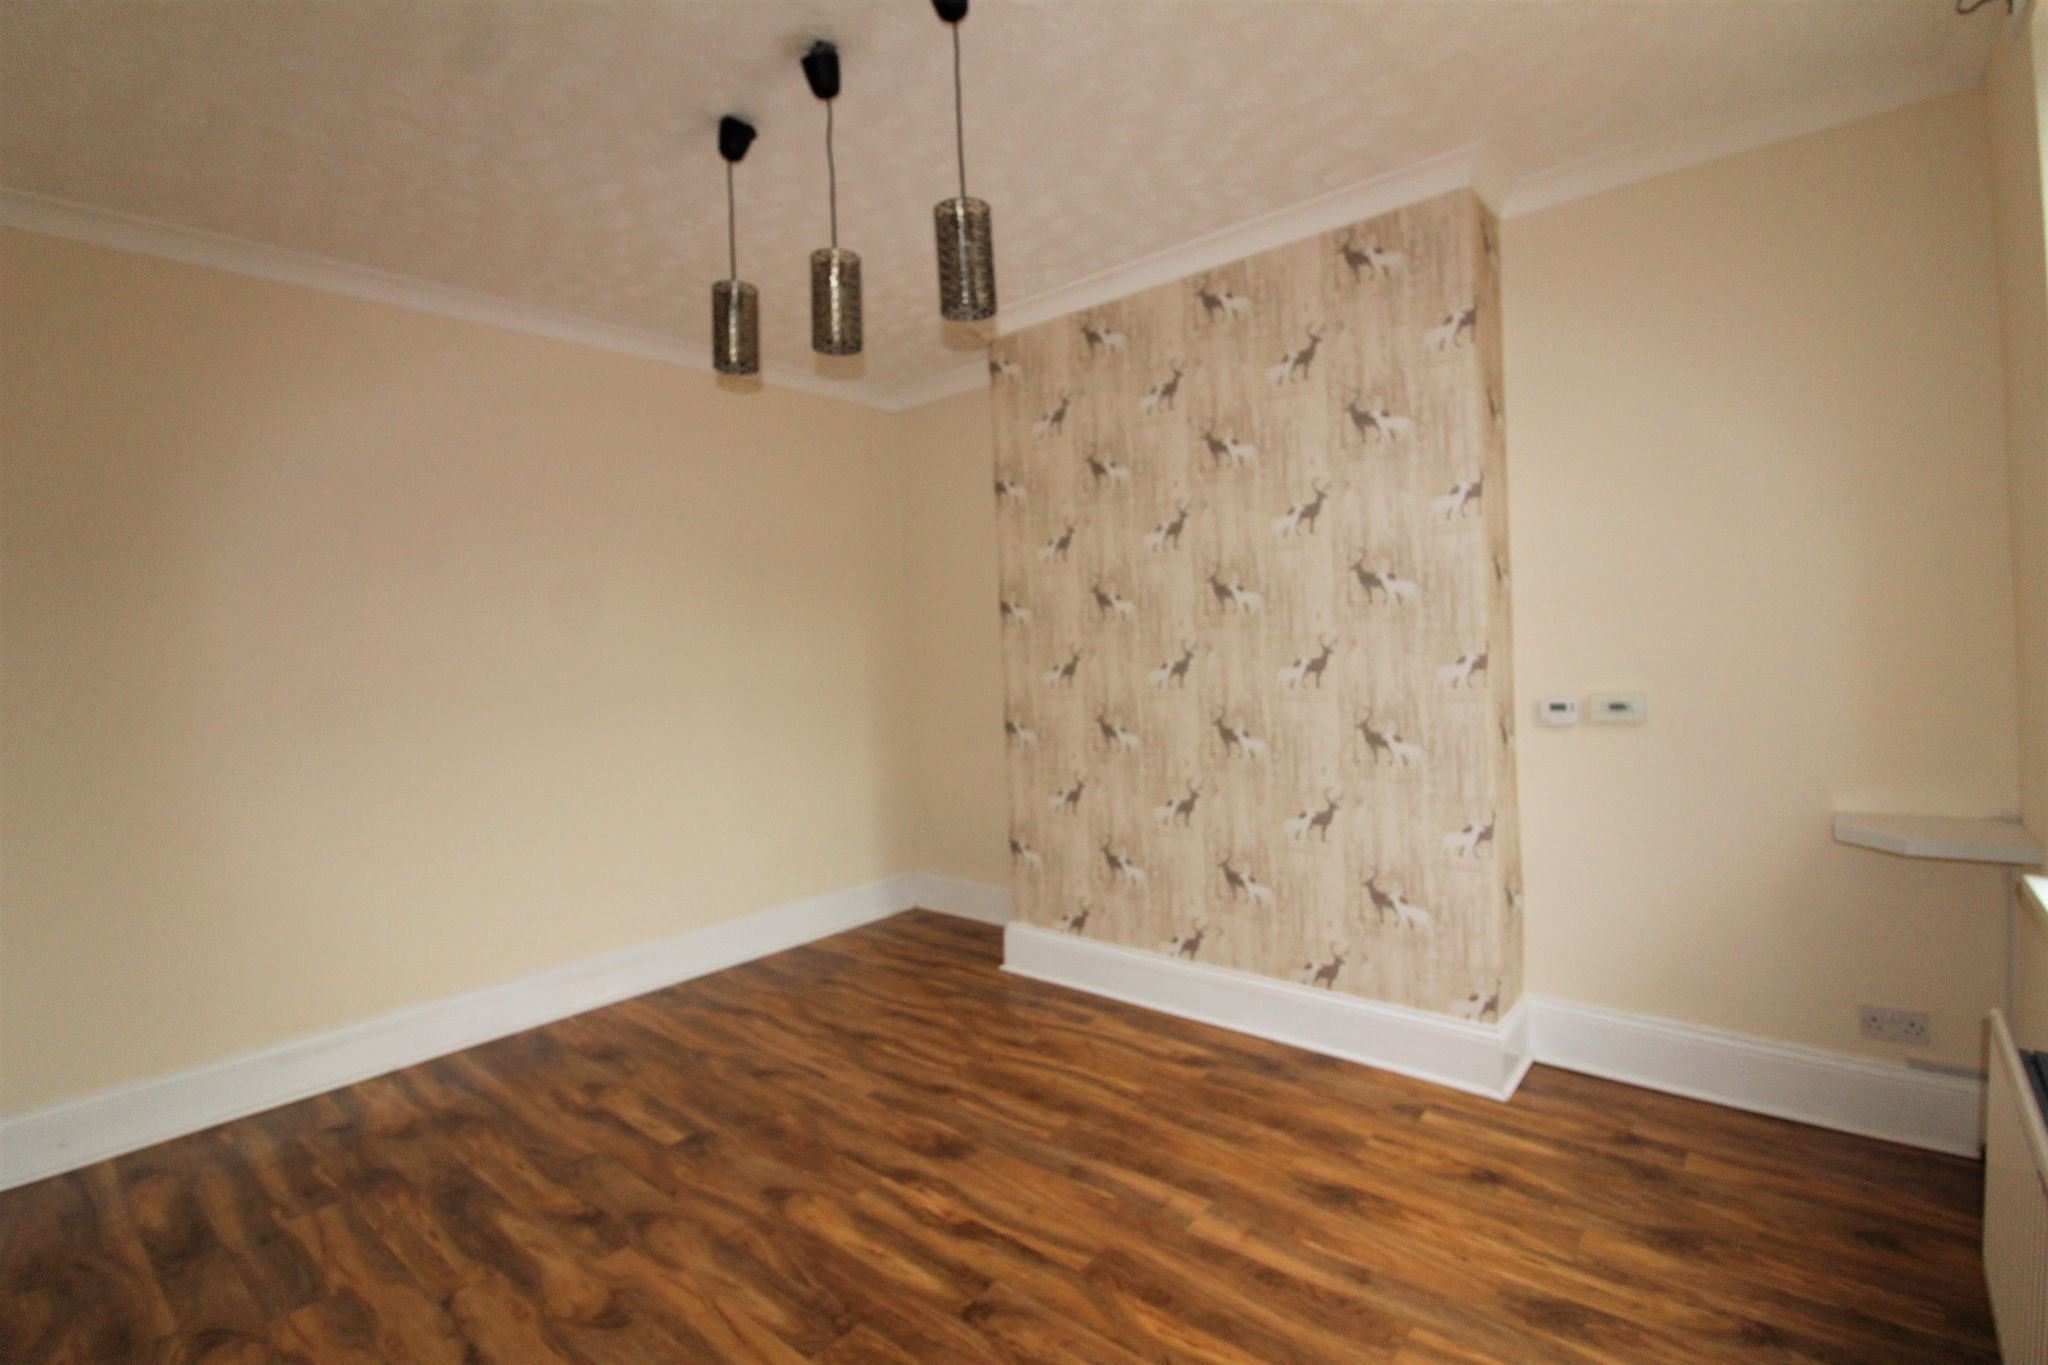 3 bedroom mid terraced house For Sale in Crook - Photograph 9.